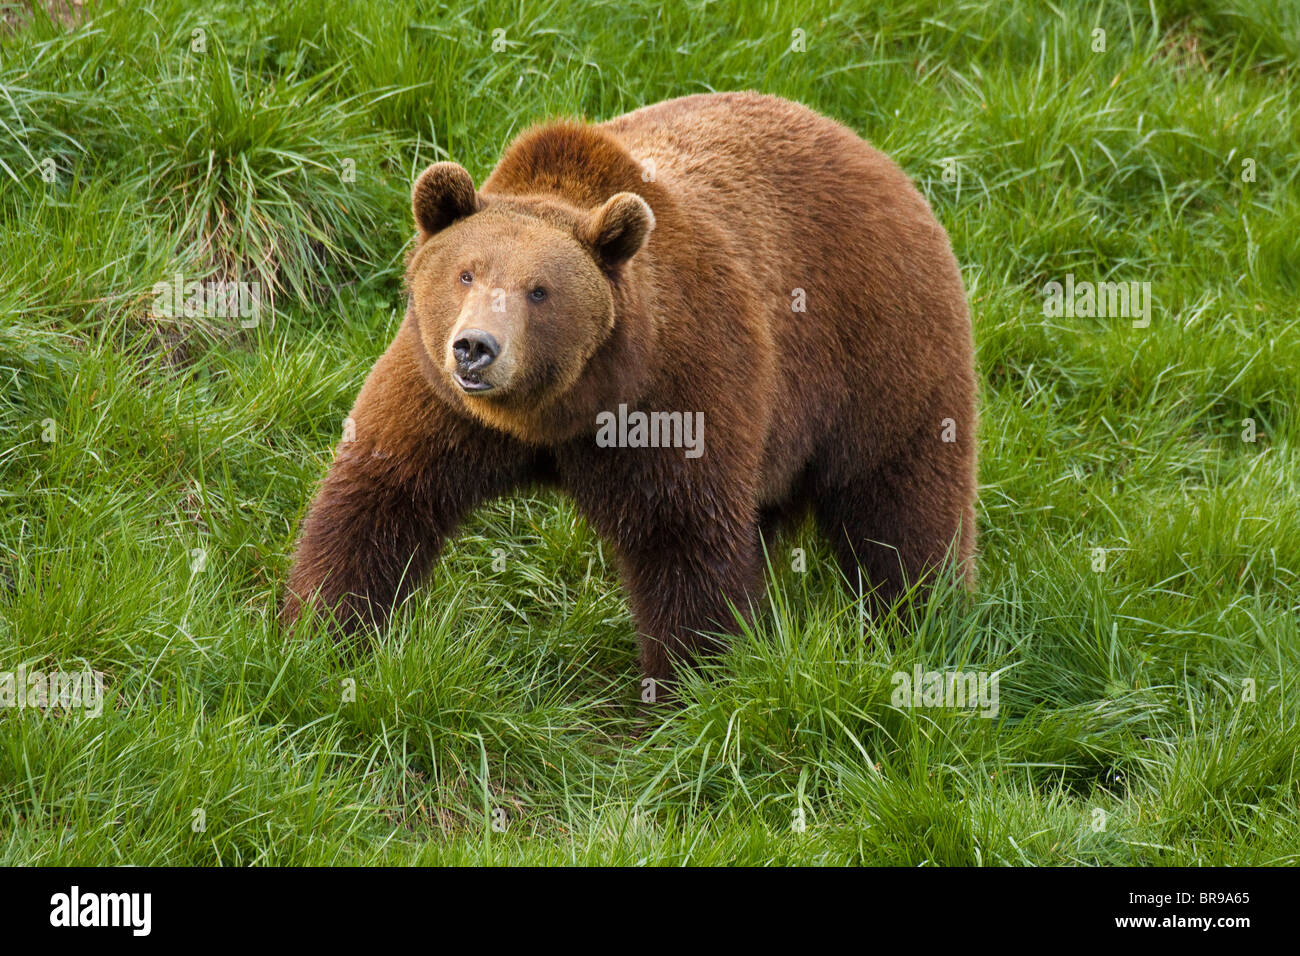 Grizzly bear roaming in territory-Note-Captive subject. - Stock Image